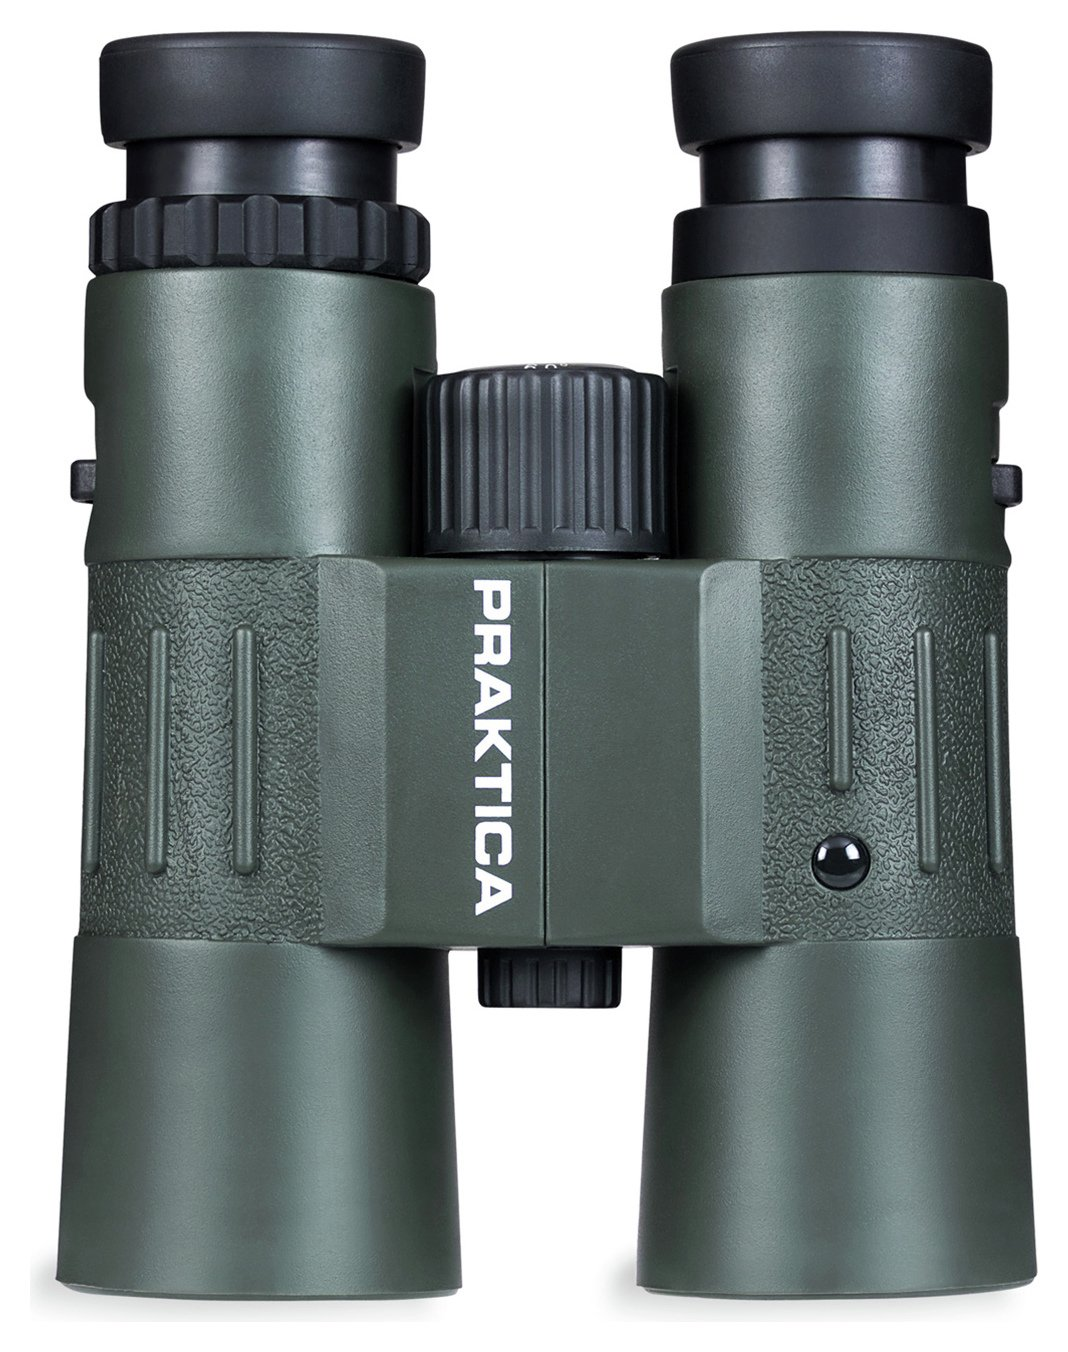 Praktica - Binoculars - Multi-Coated Waterproof 10x42mm